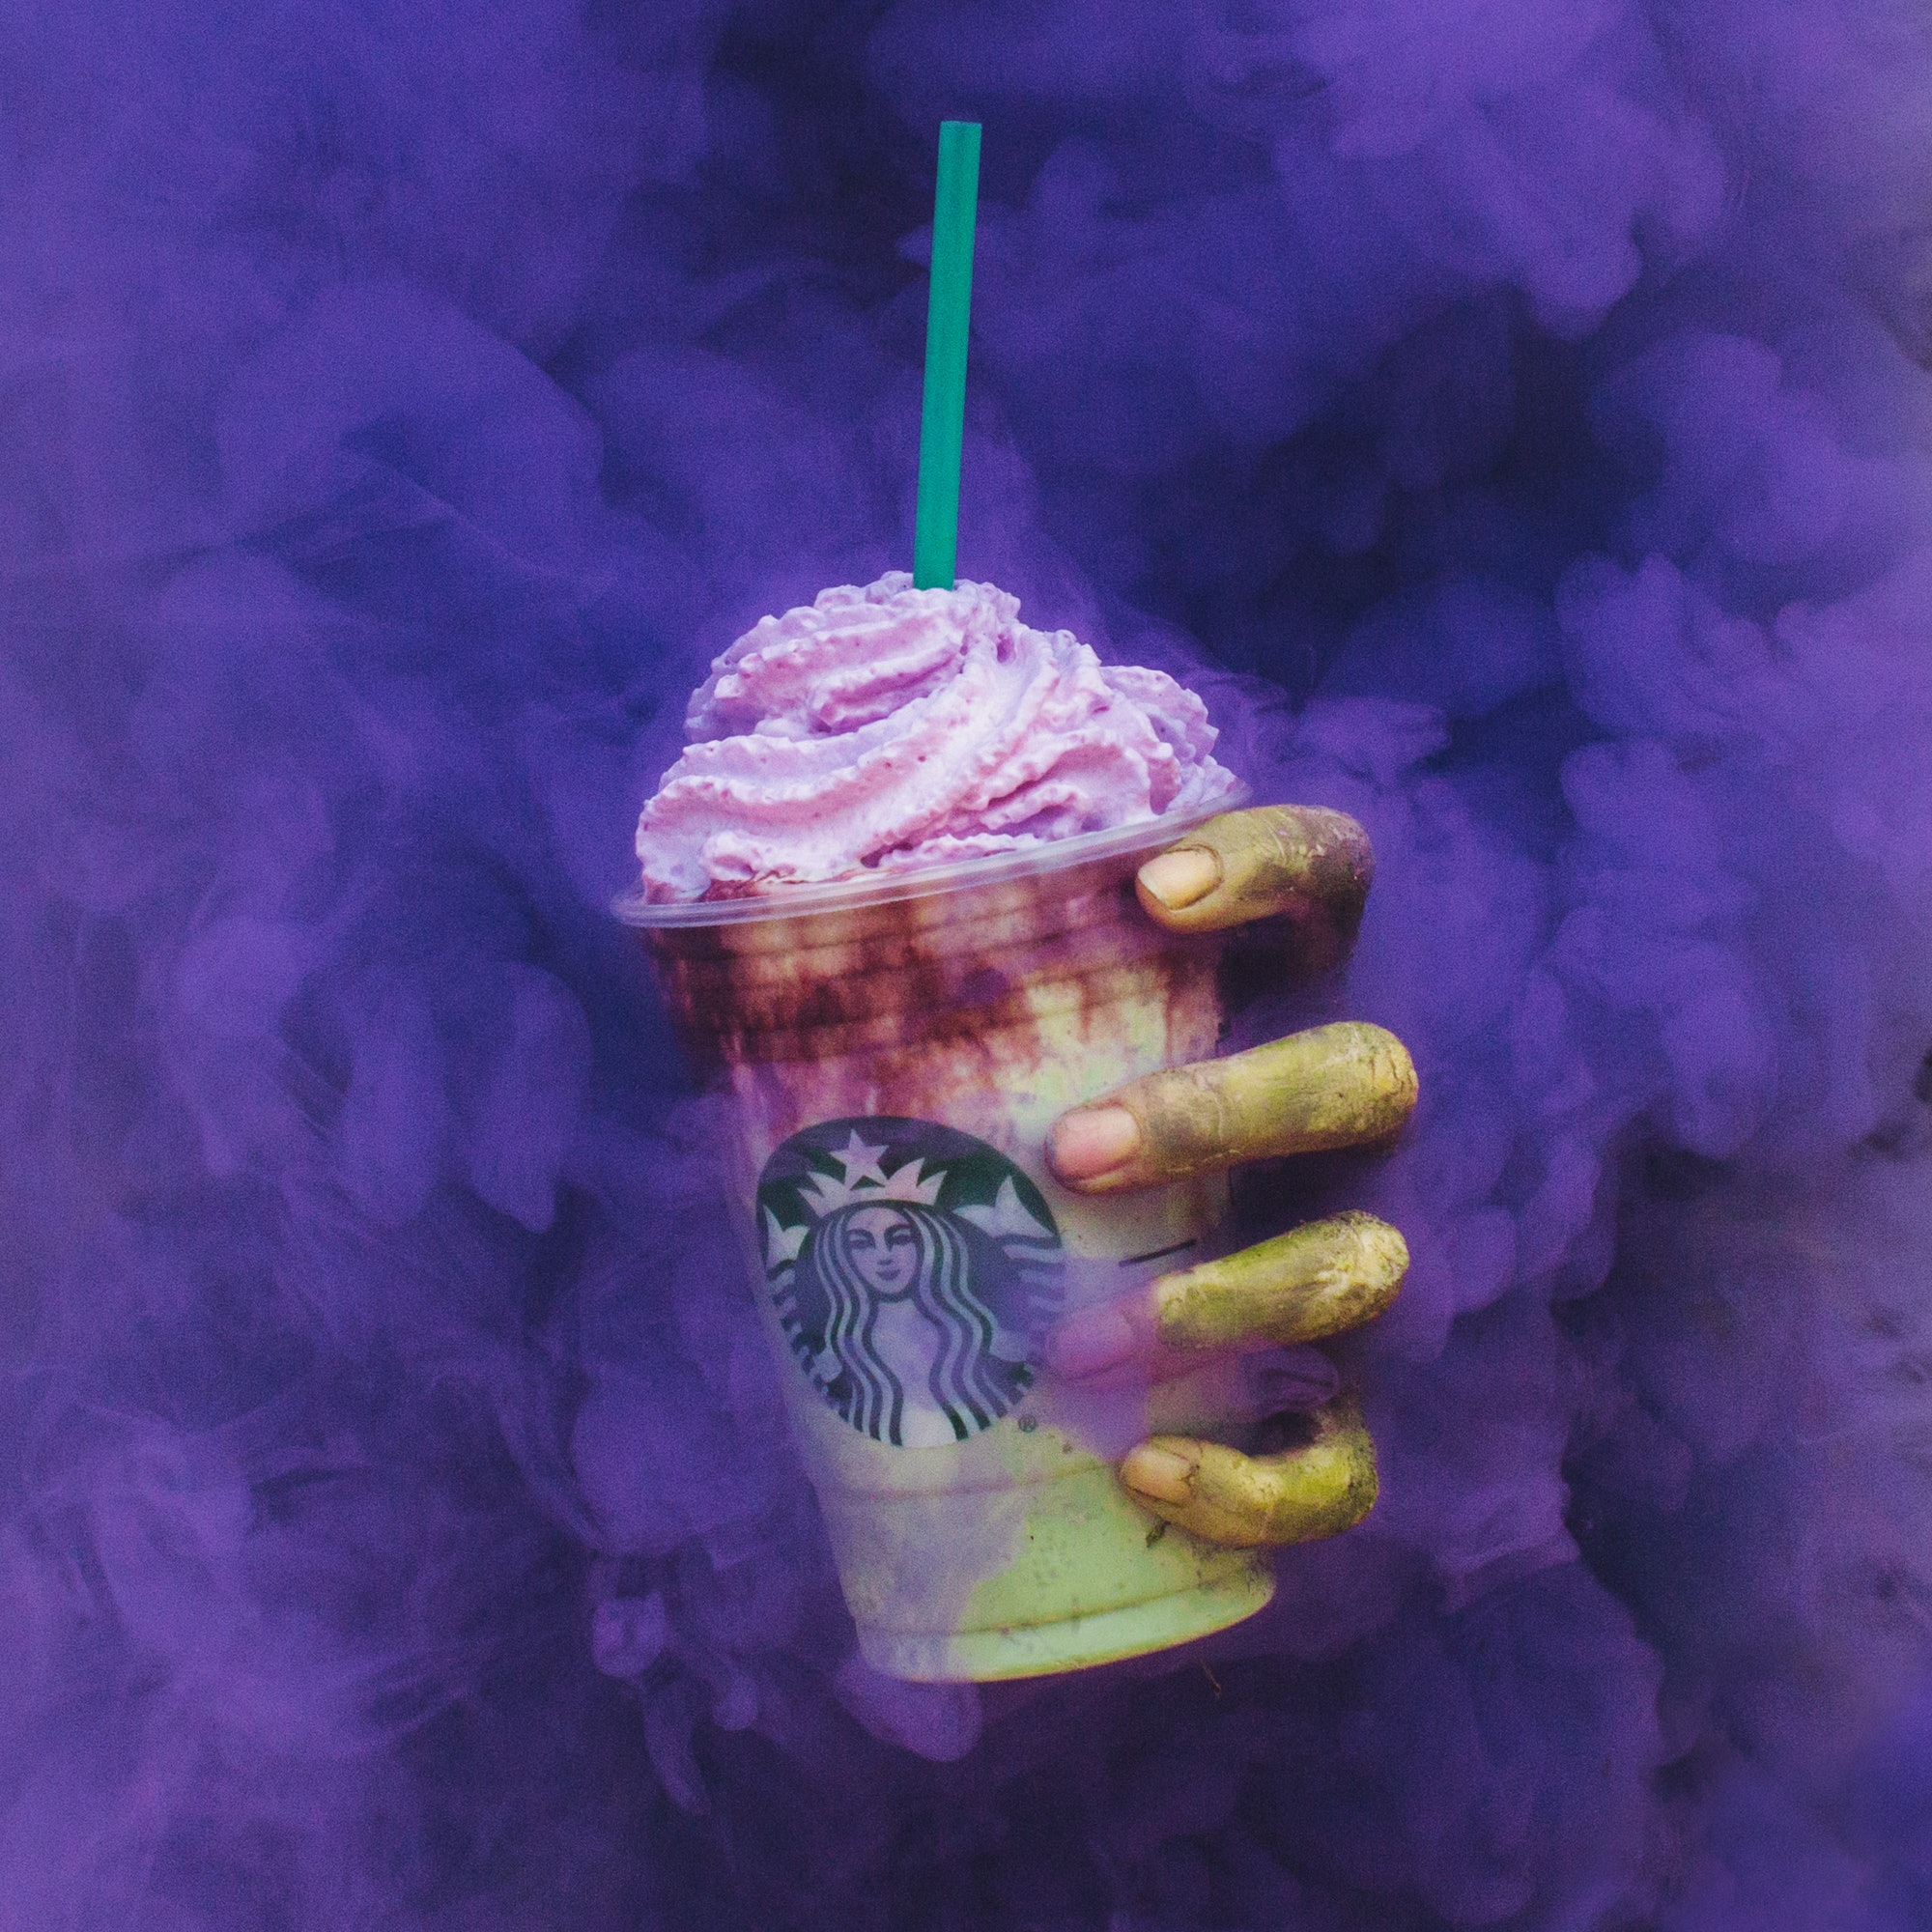 New Starbucks Zombie Frappuccino is a dark unicorn risen from the dead